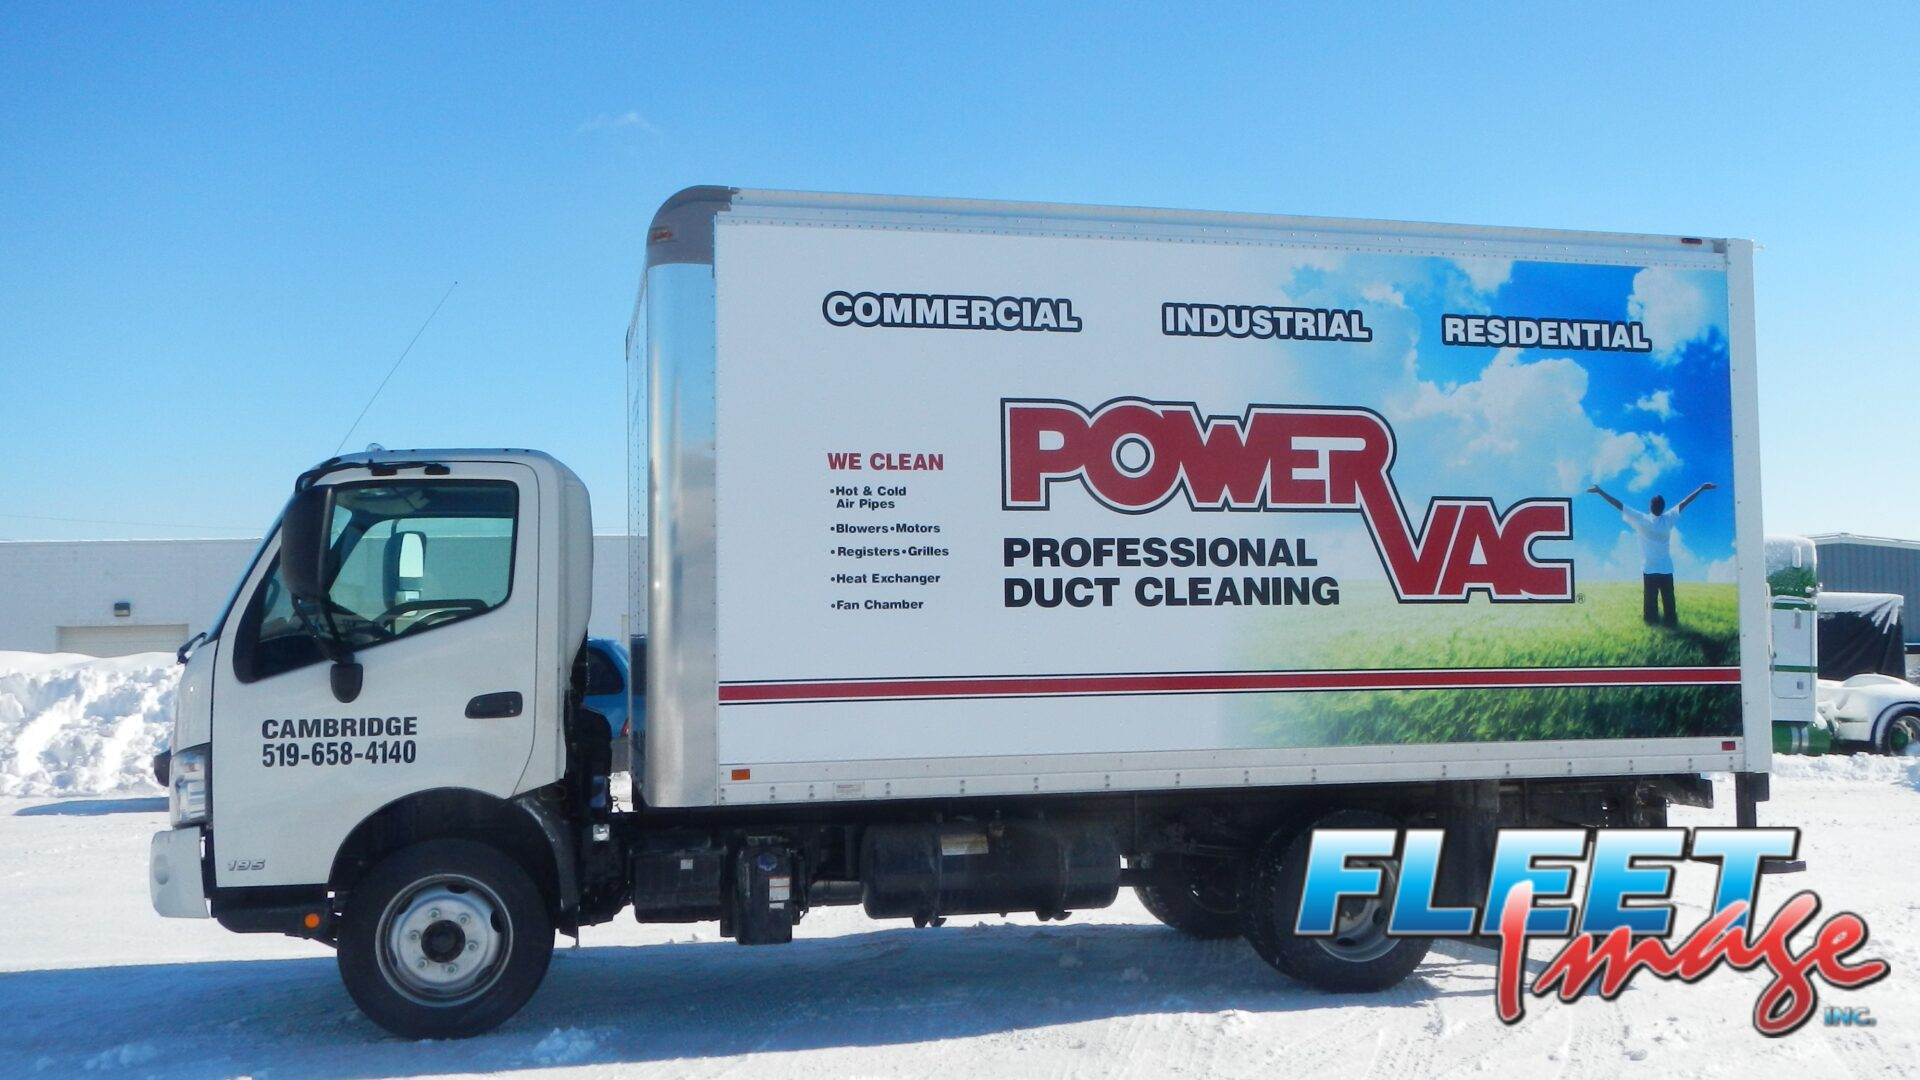 POWERVAC Professional Duct Cleaning decal sticker on a truck